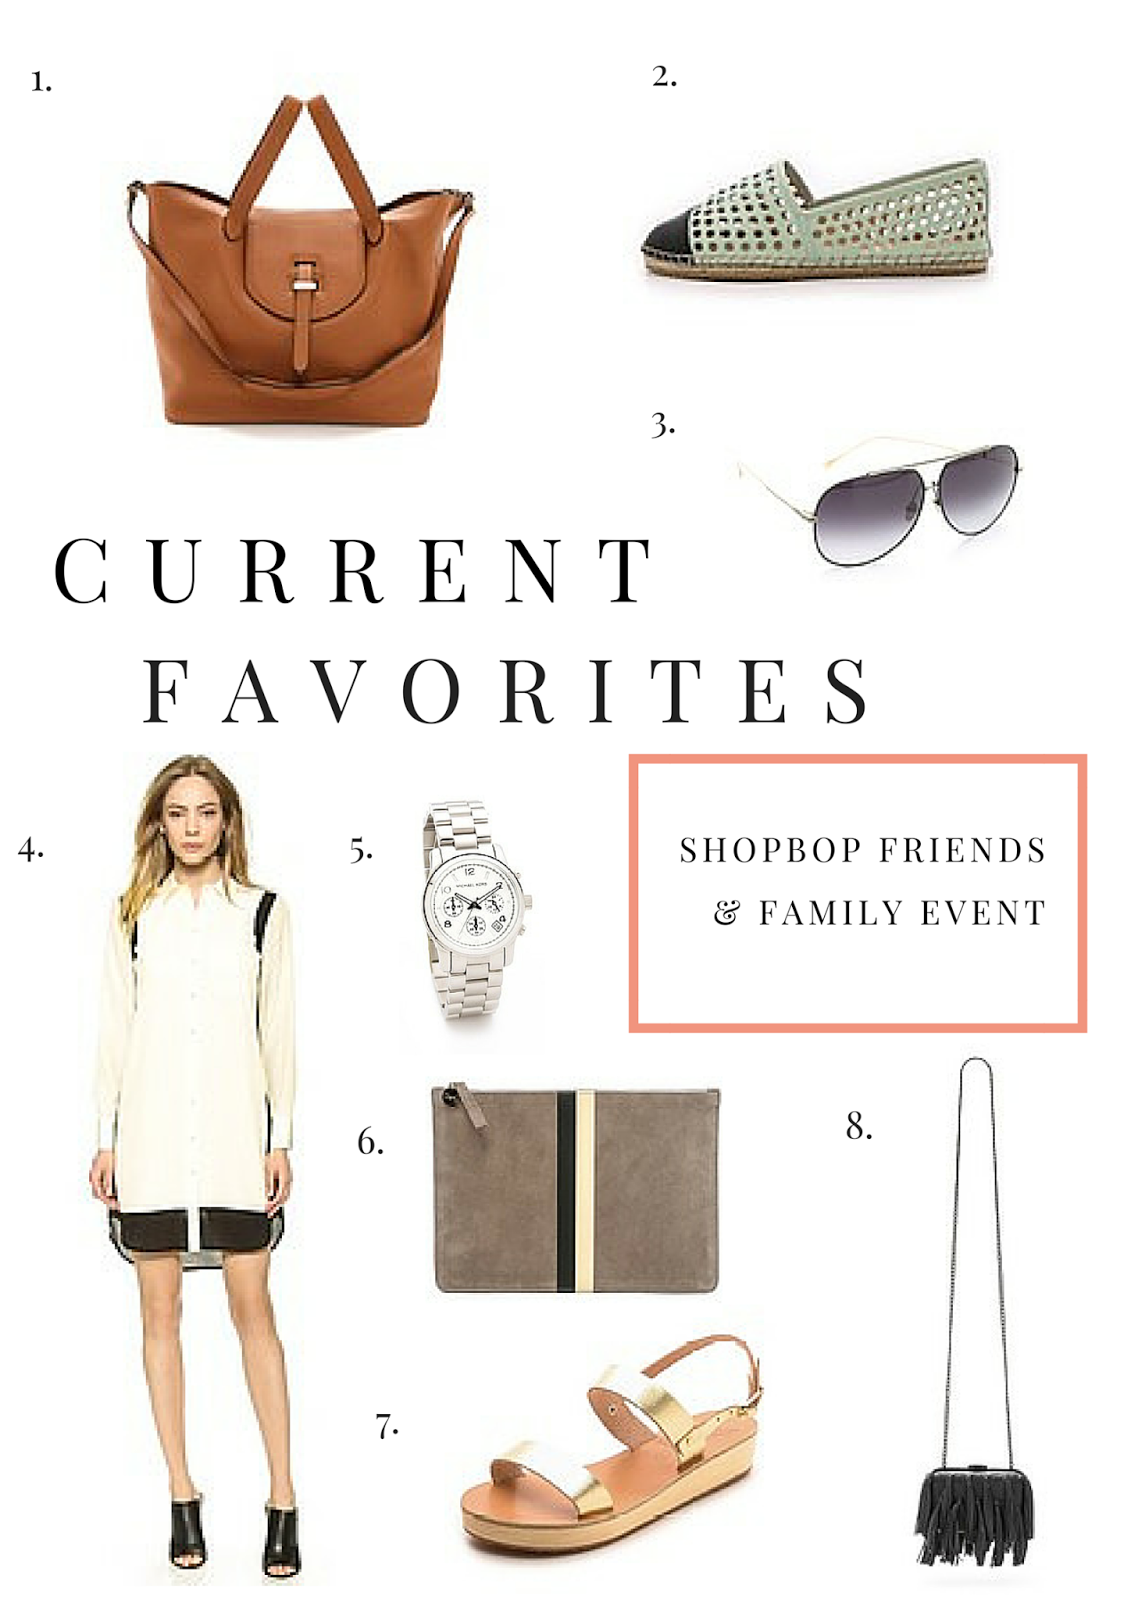 Shopbop, Shopping, Sale, Clothing, Accessories